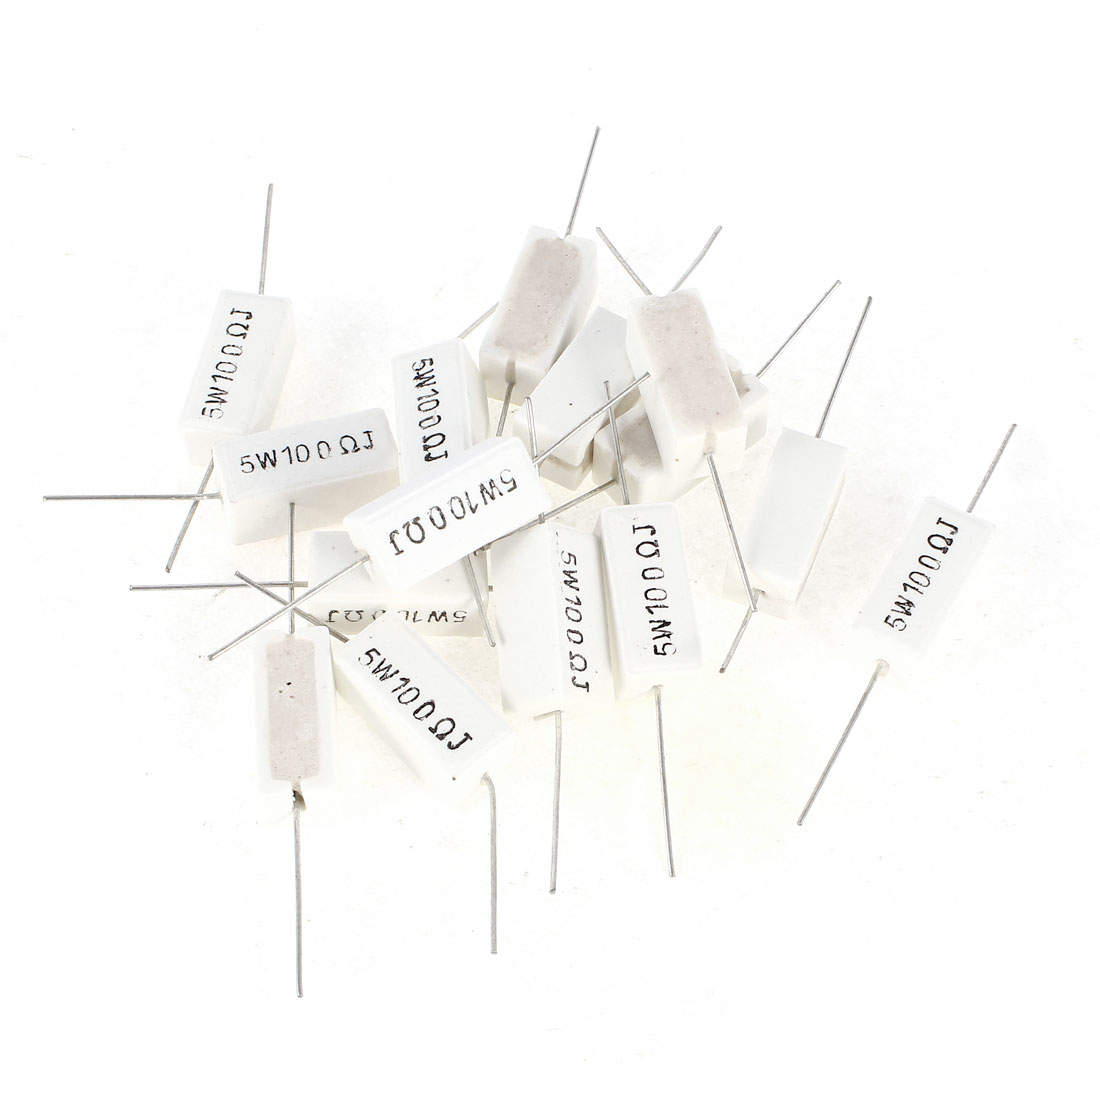 15 Pieces Silver Tone Axial Lead White Rectangle Cement Resistor 100 Ohm 5 Watt